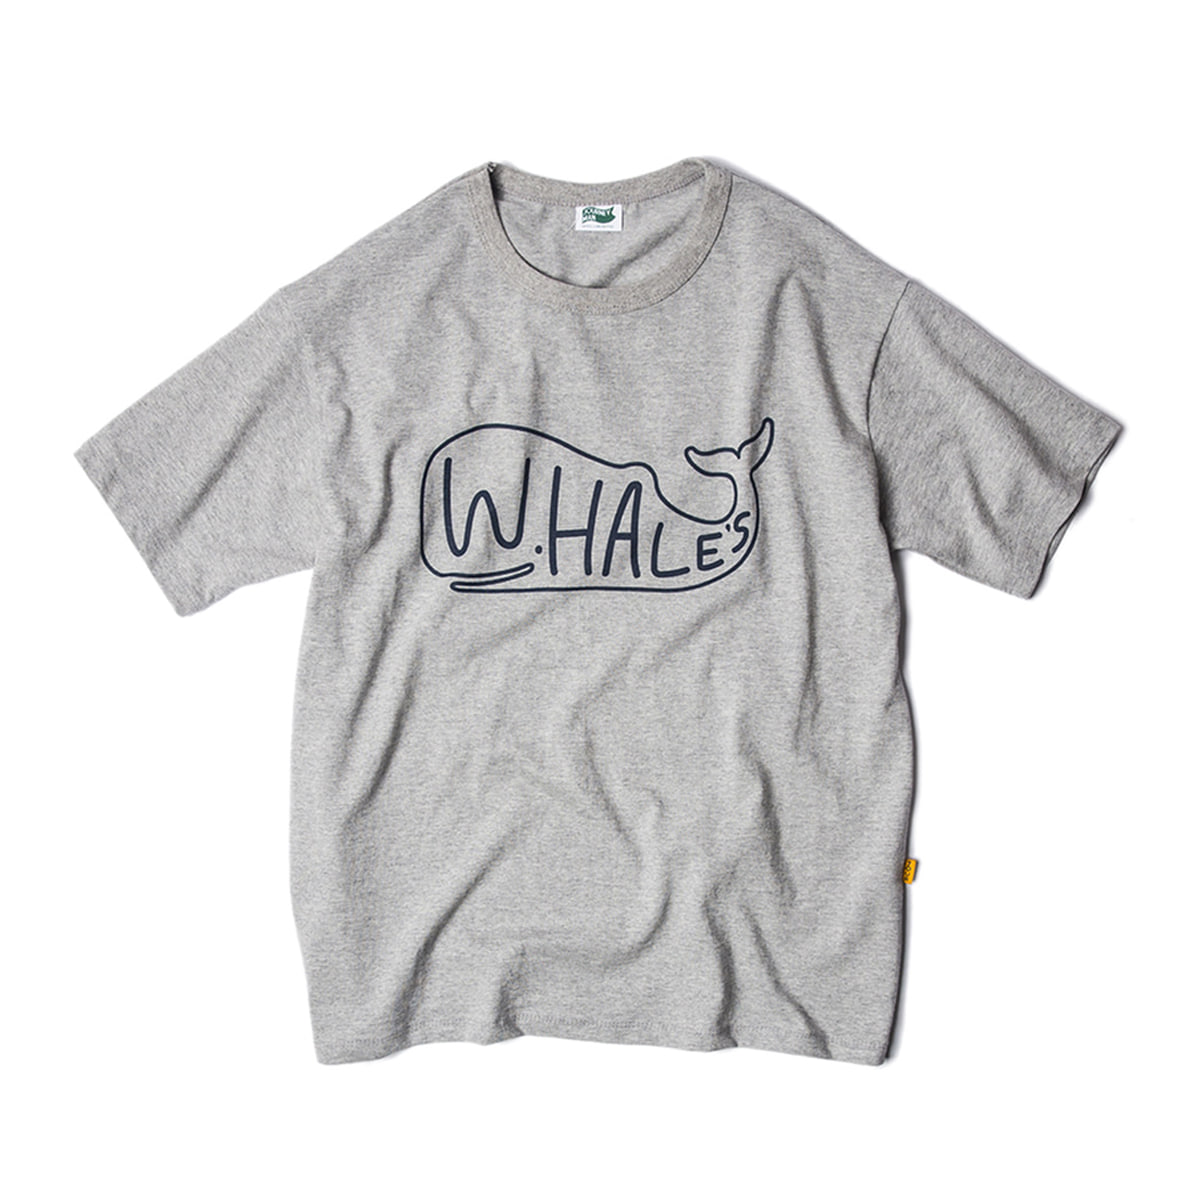 [JOURNEYMAN] WHALE'S SURFER TEAM BIG LOGO T-SHIRTS 'HEATHER GRAY'